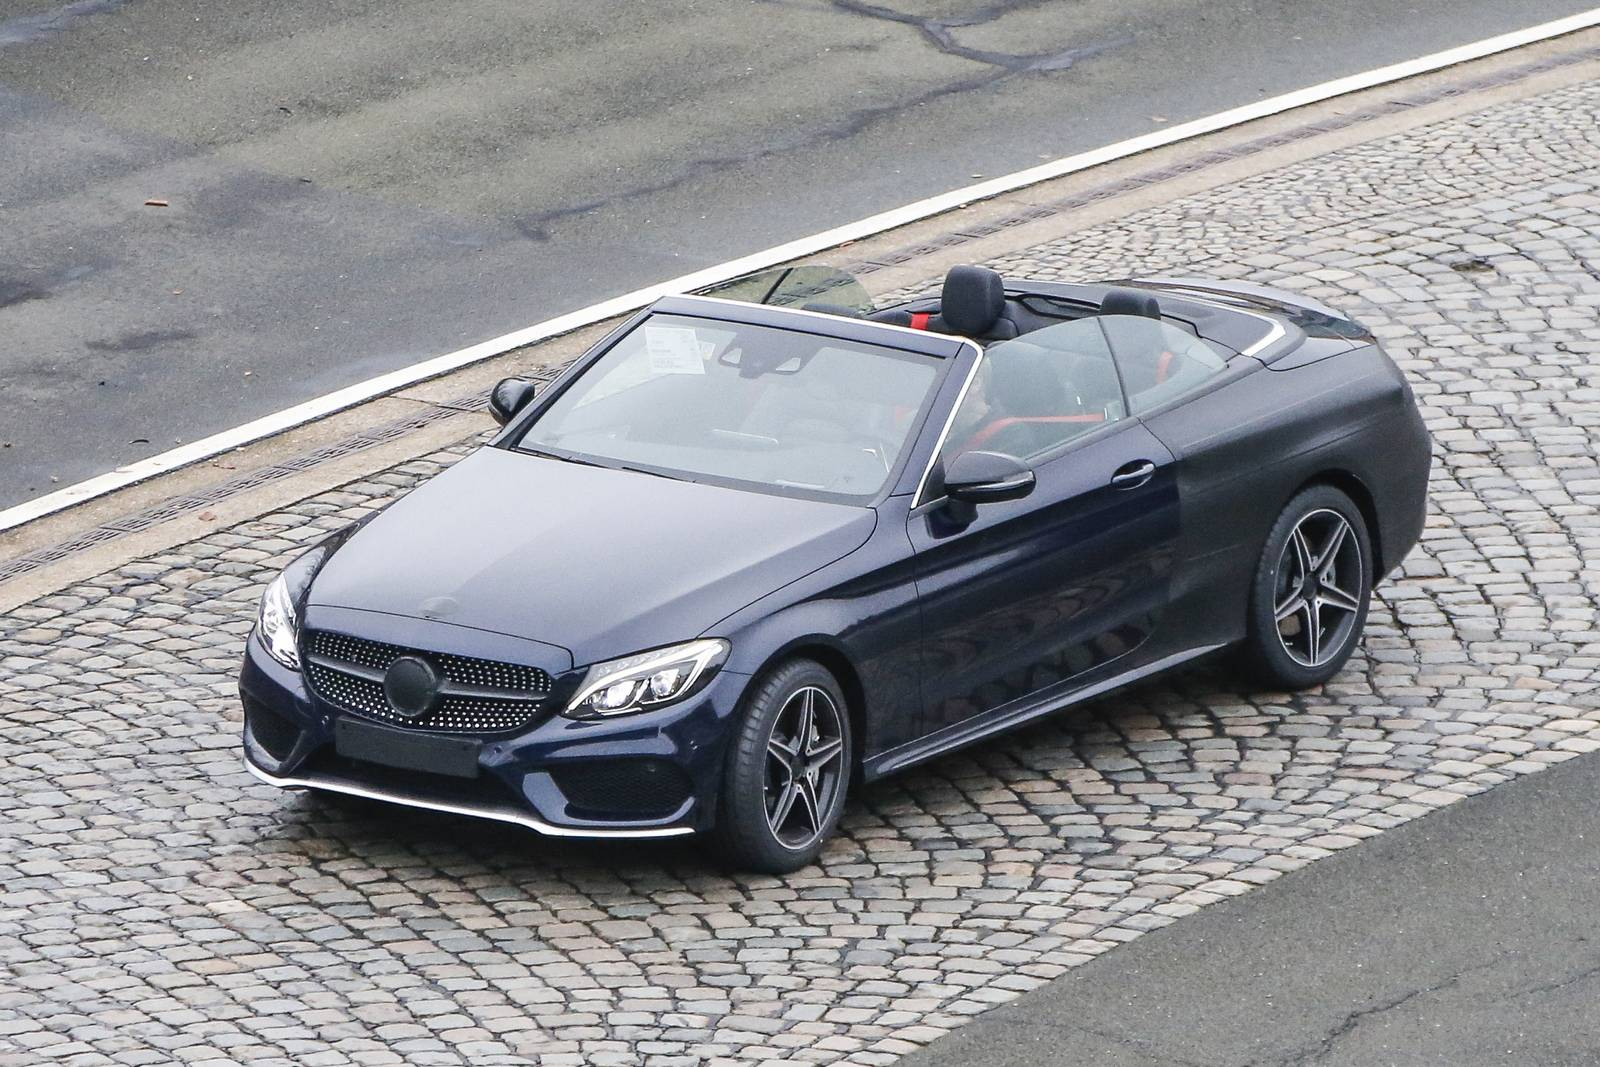 Spy Images From Drop Top 2017 Mercedes-Benz C-Class 6